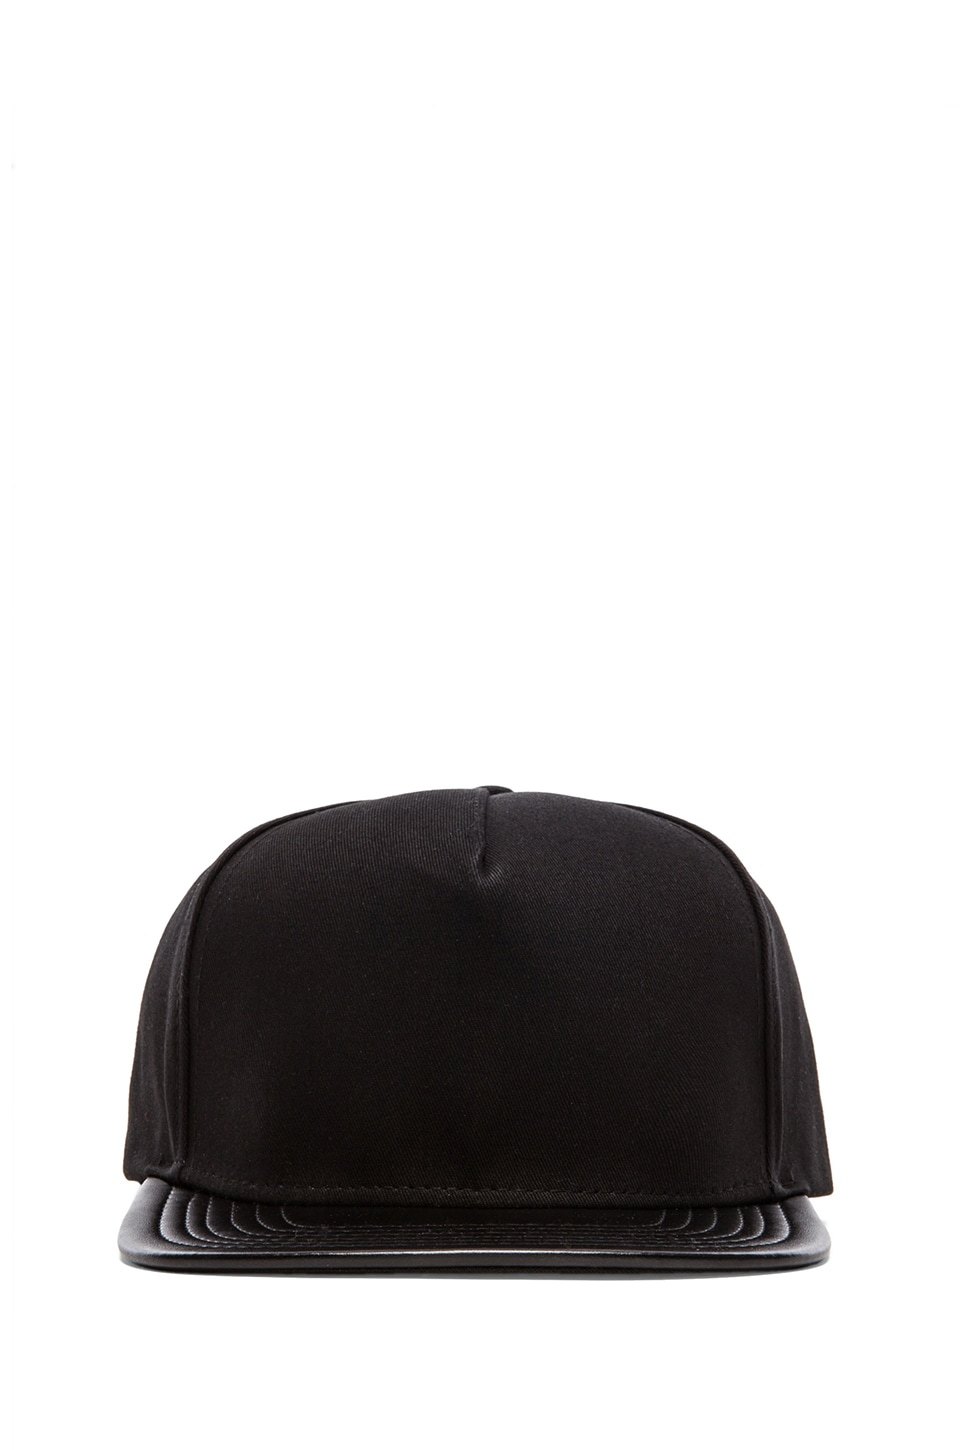 Stampd Stampd Arch Hat in Black